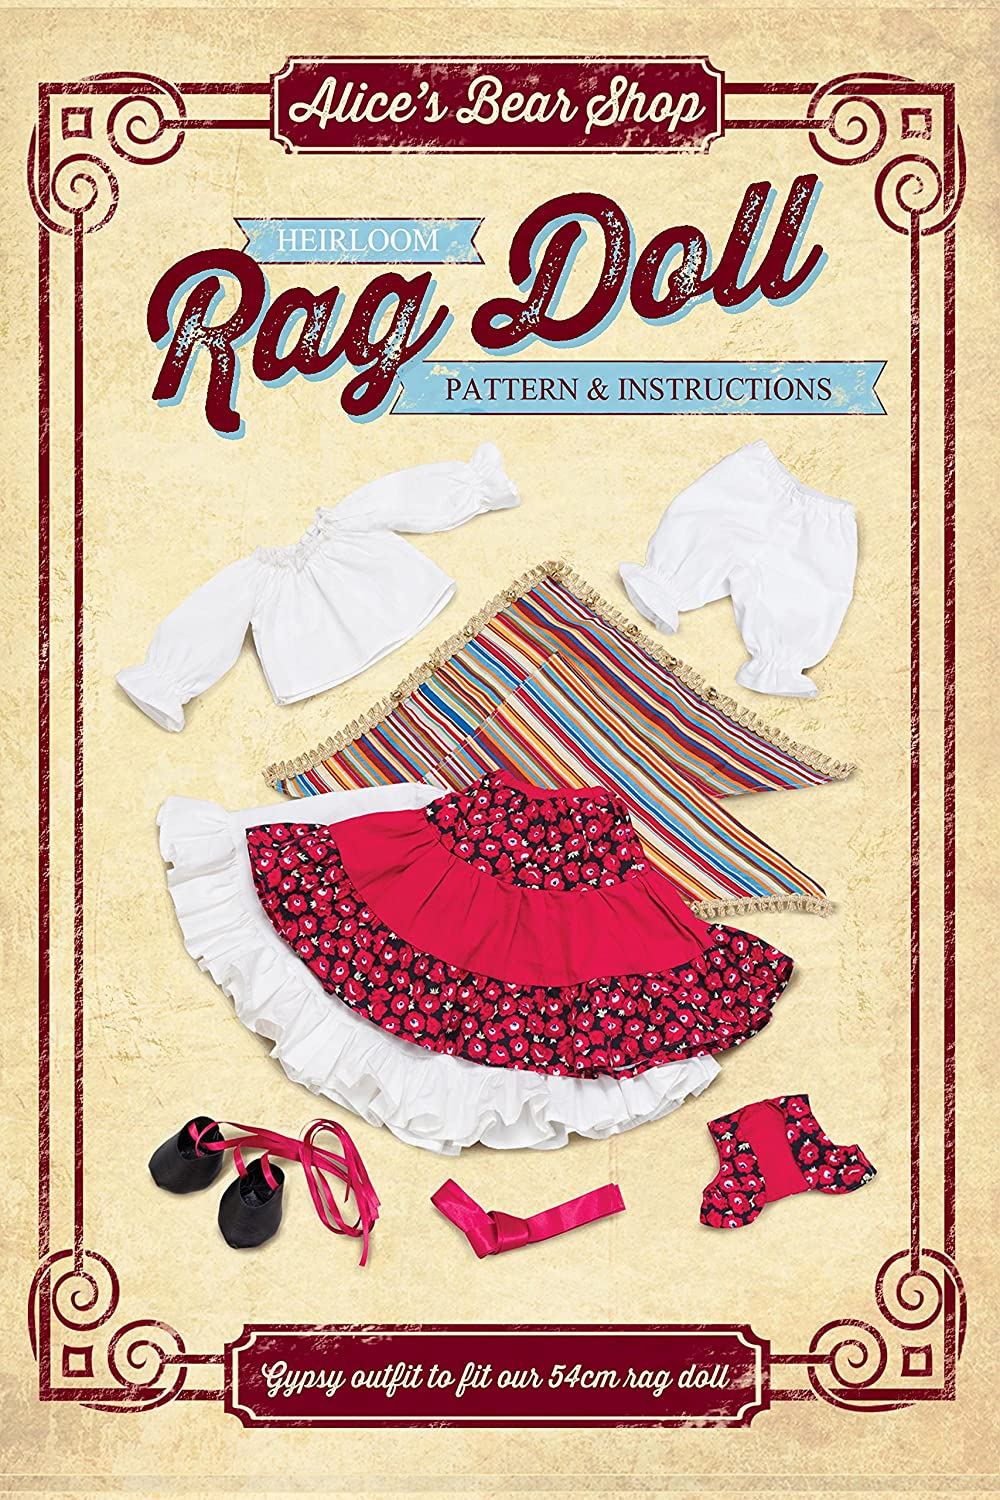 Pattern and A5 Instruction booklet to make a Gypsy outfit to fit our 54cm rag doll Alice's Bear Shop